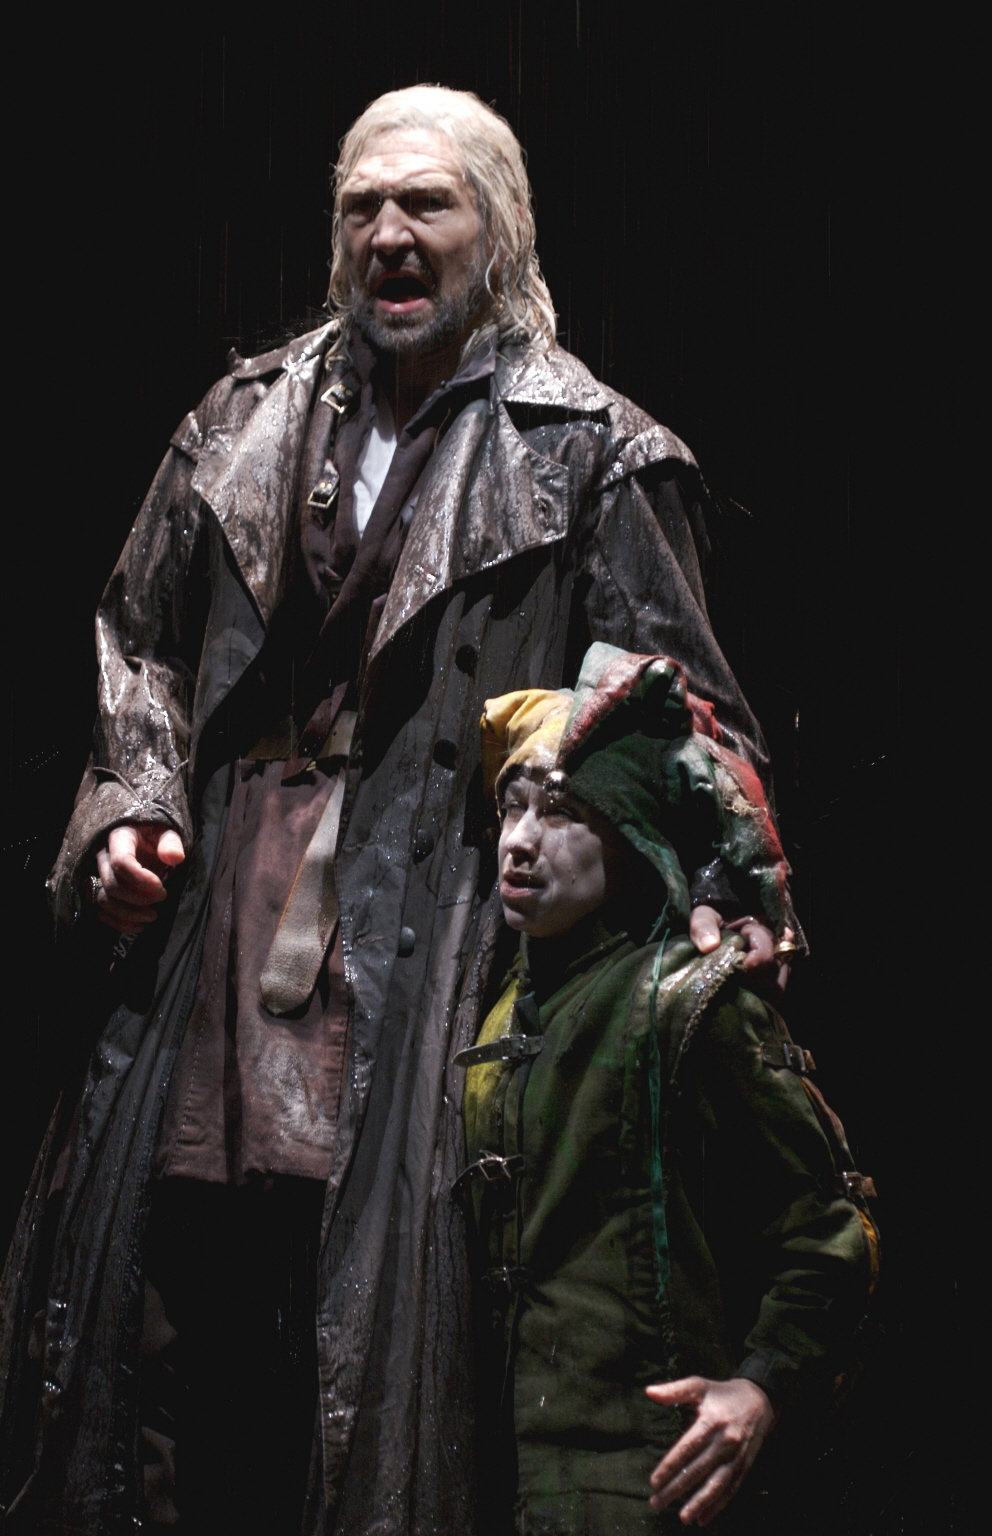 A jester kneels at the side of a man in a long black greatcoat.